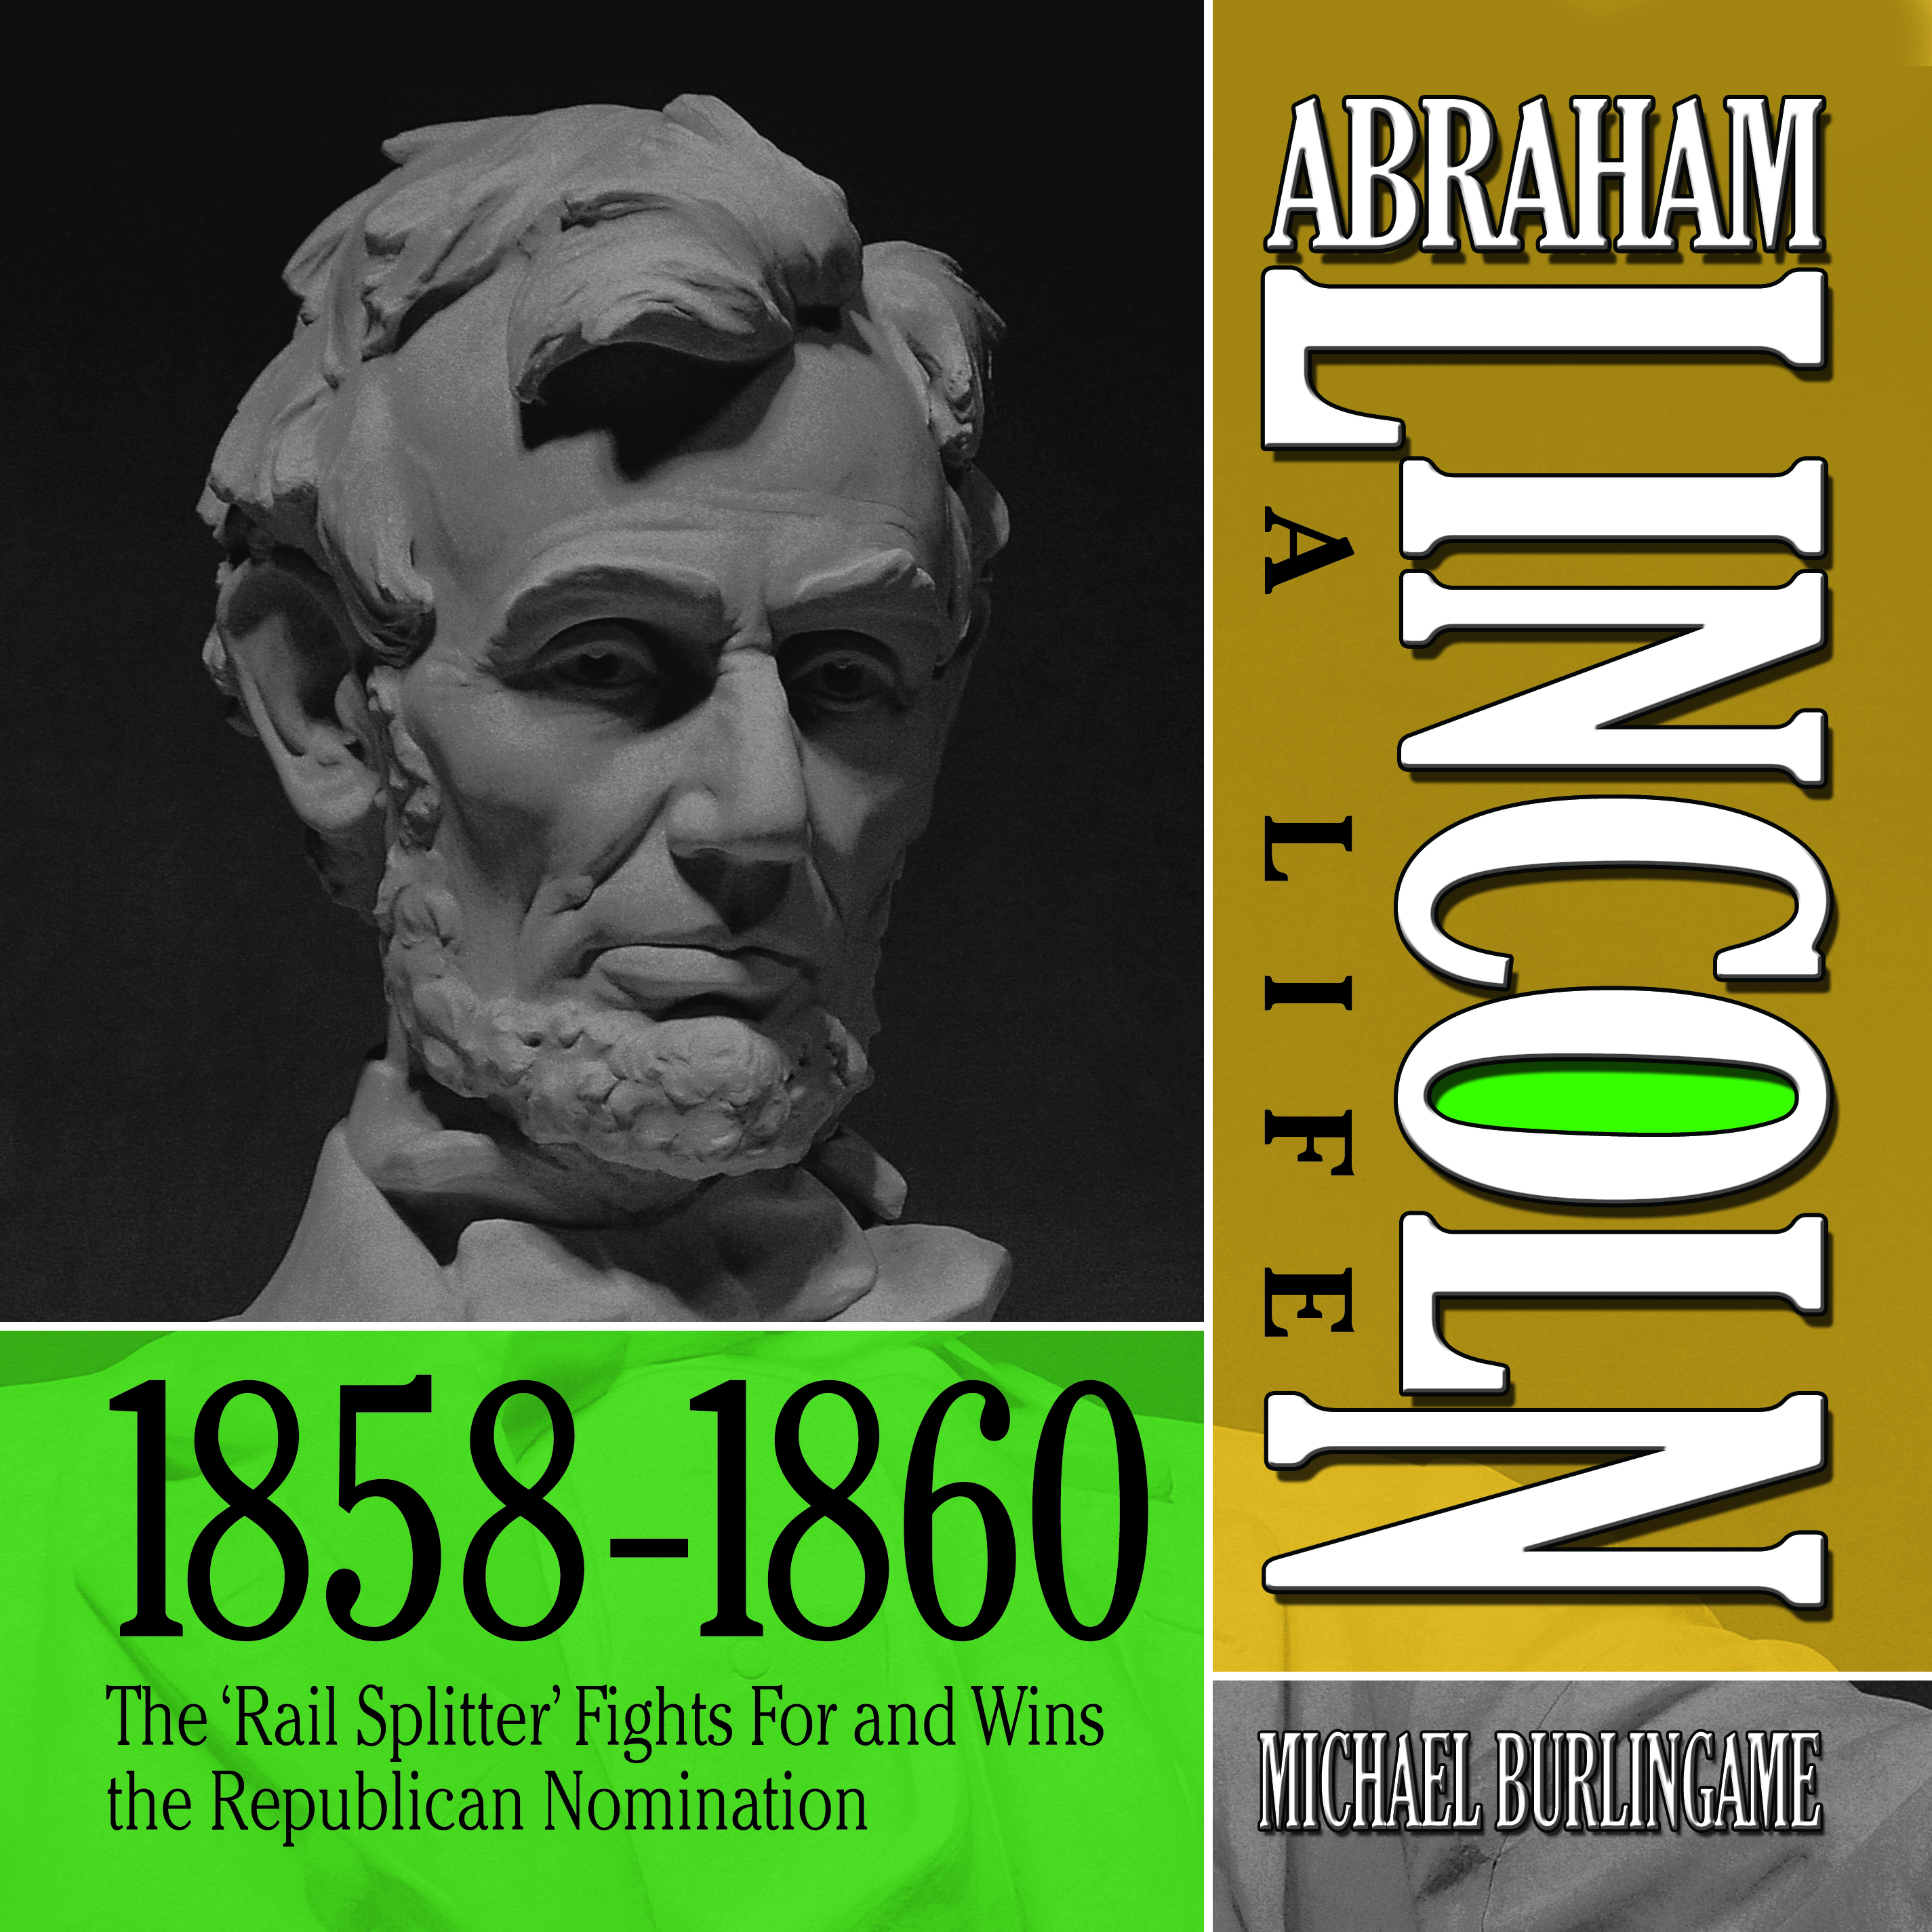 Printable Abraham Lincoln: A Life  1859-1860: The 'Rail Splitter' Fights For and Wins the Republican Nomination Audiobook Cover Art